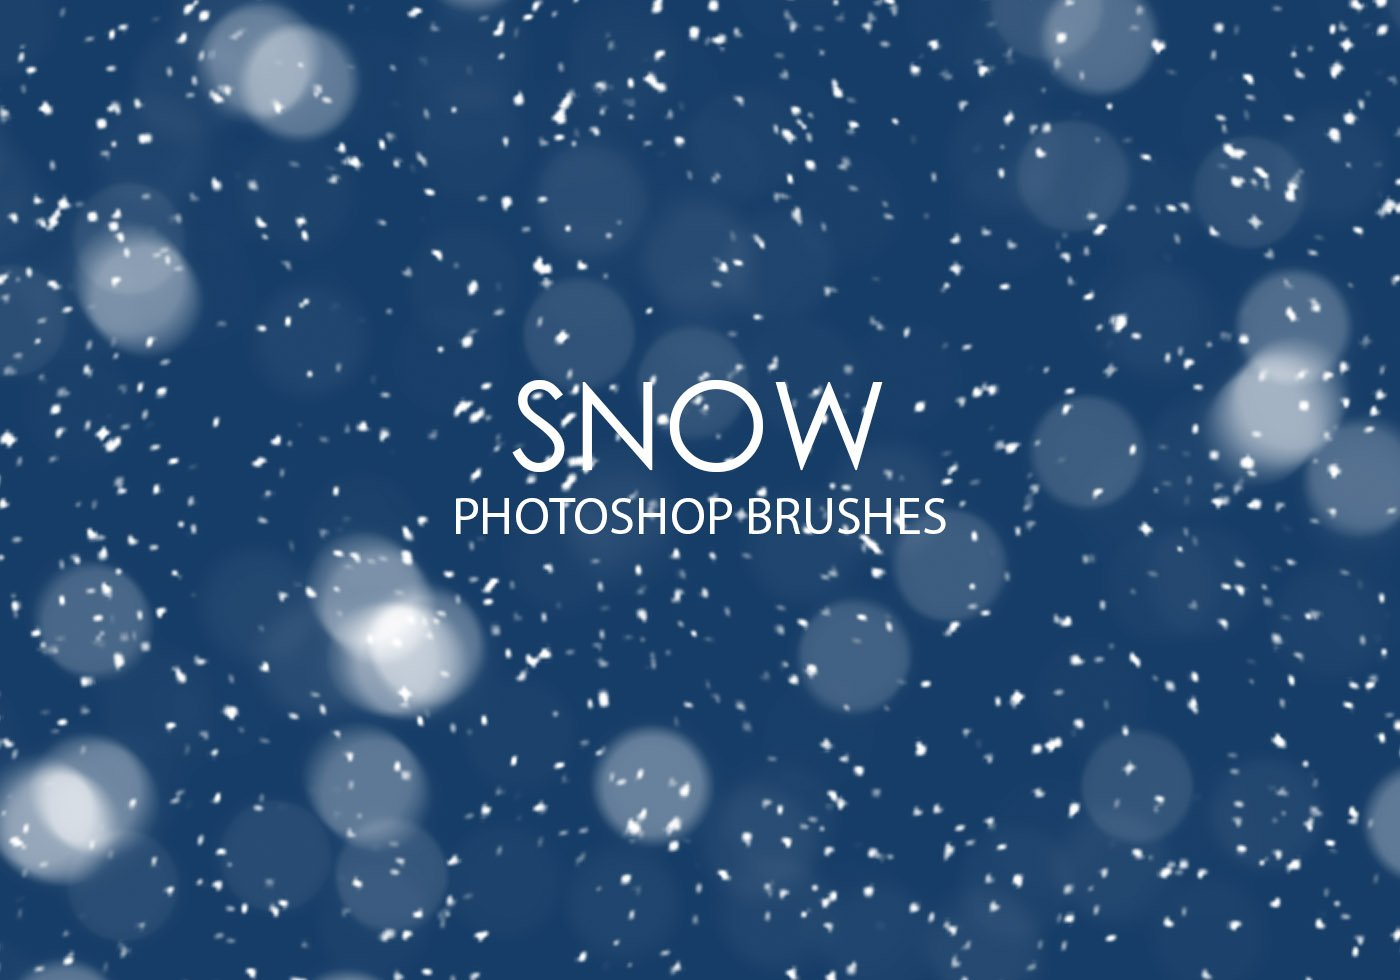 Fall And Winter Wallpaper Free Snow Photoshop Brushes Free Photoshop Brushes At